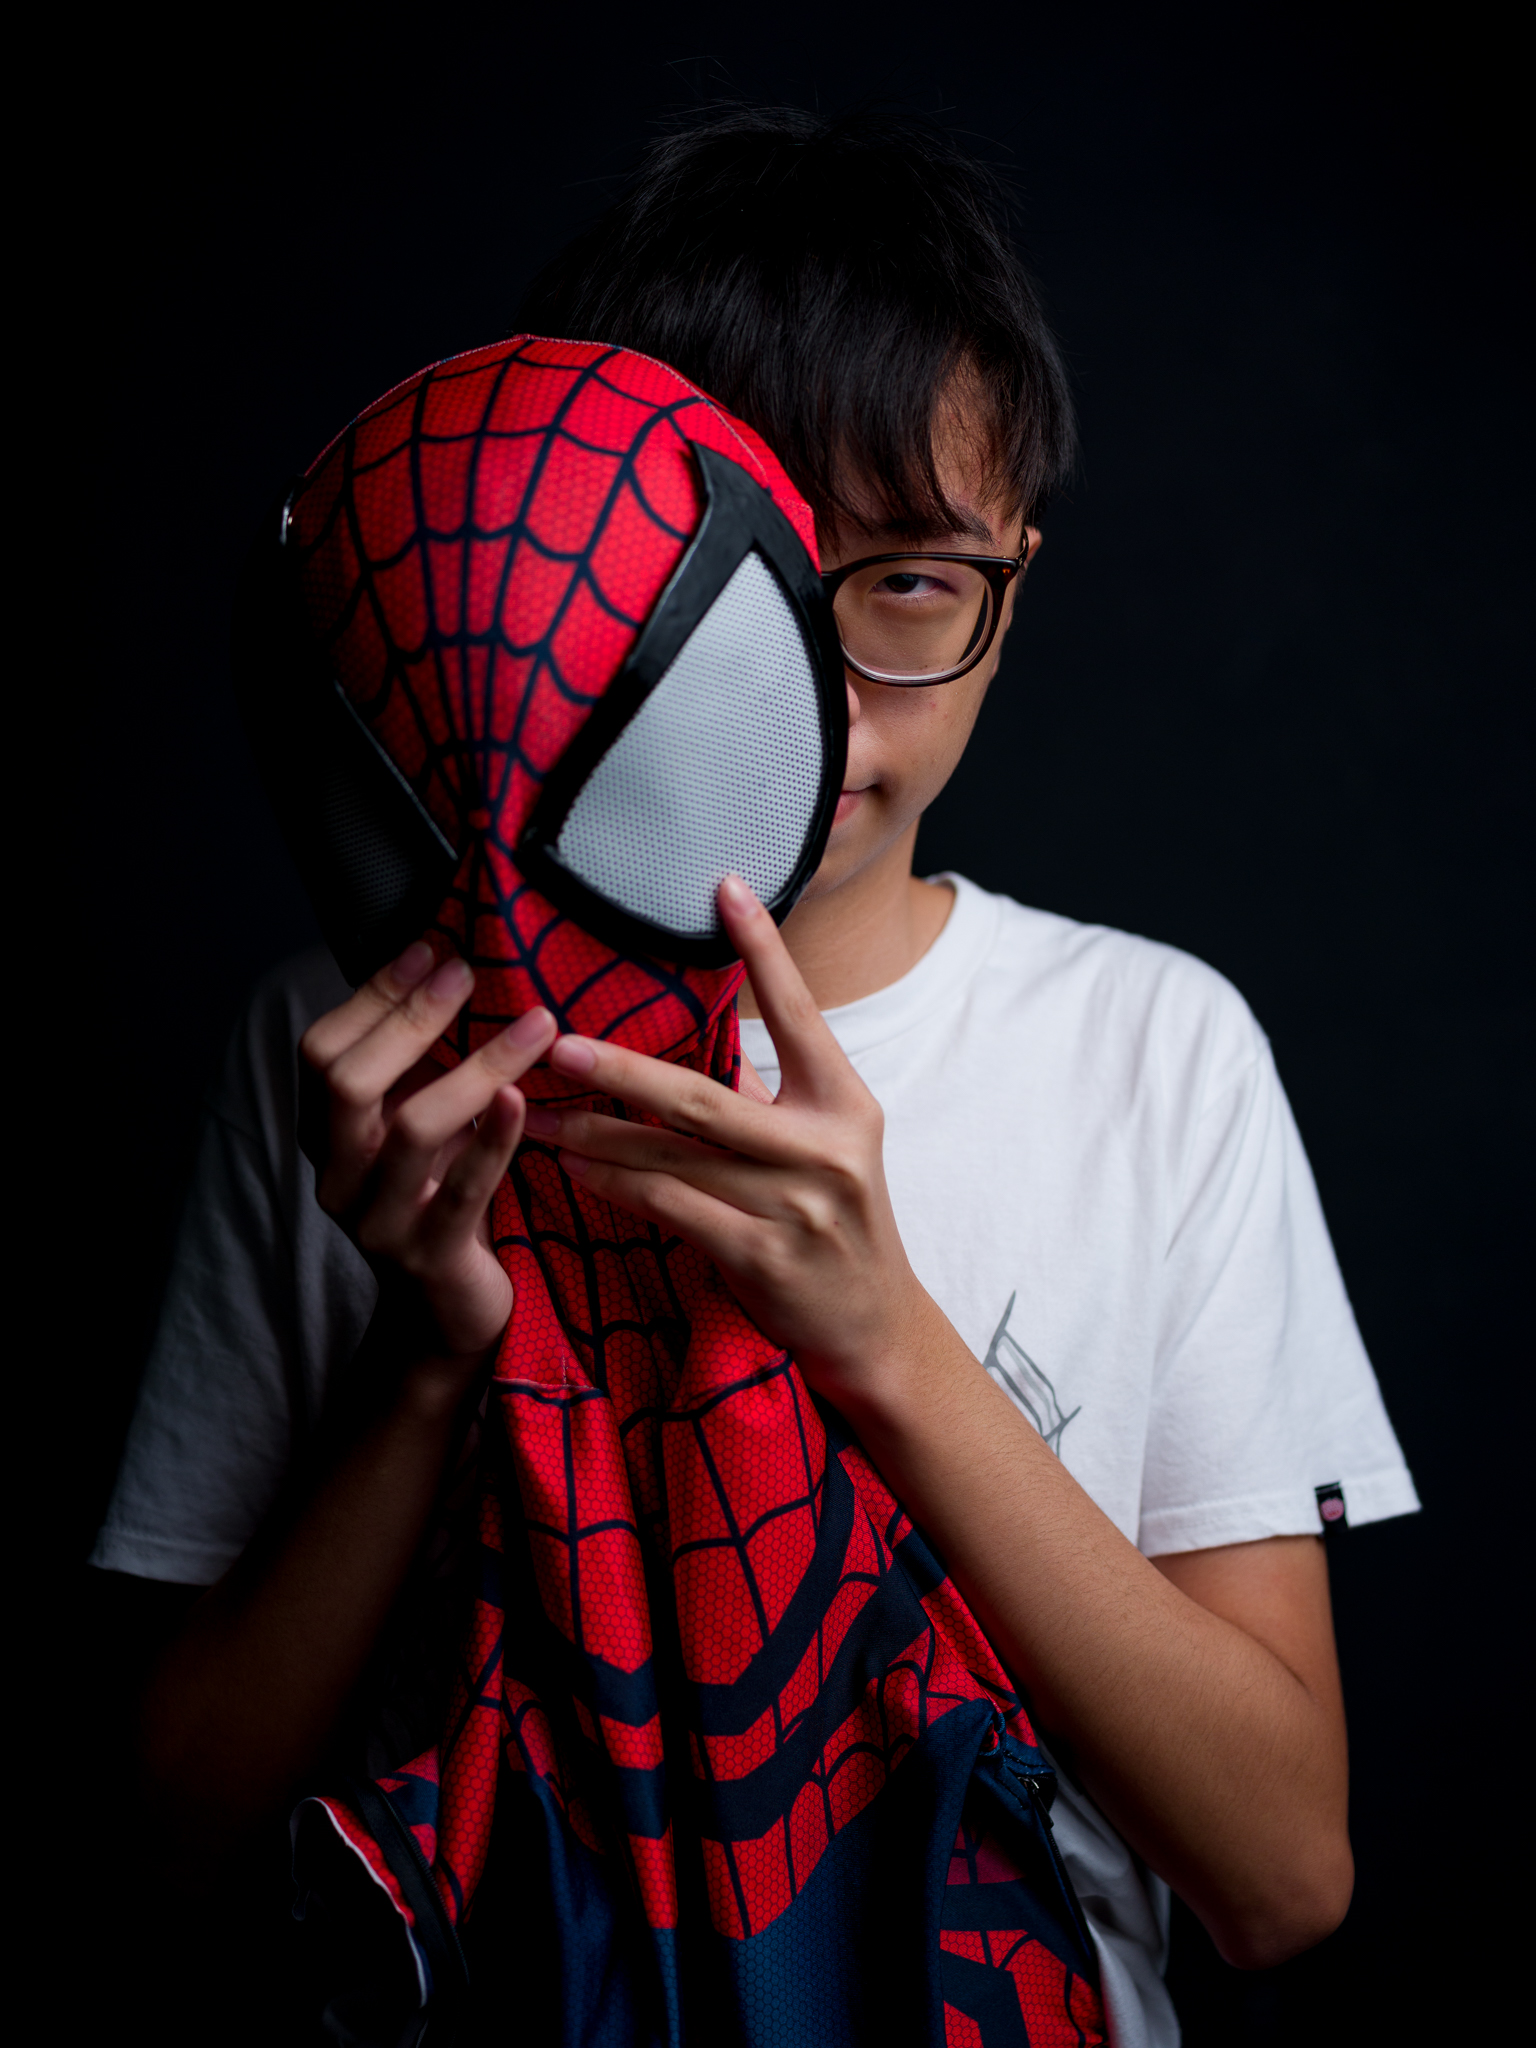 'Peter Parker mode' - before the transformation.